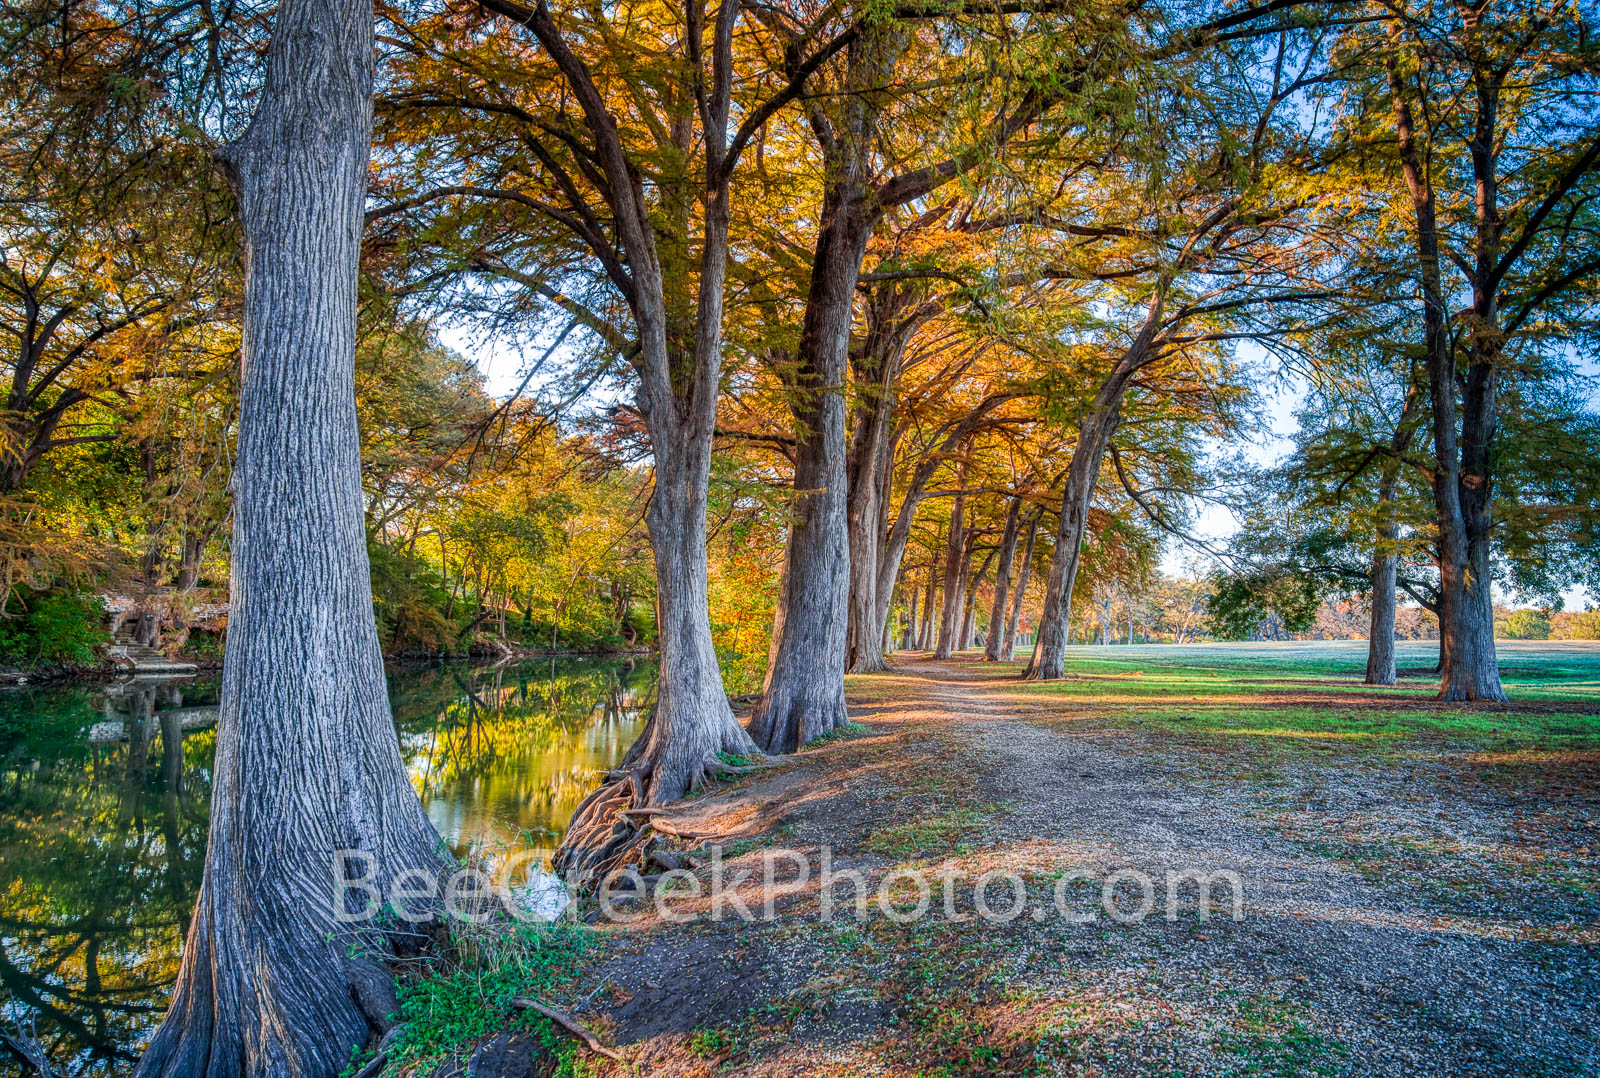 Cypress Along the Guadalupe  - The bald cypress were so lovely along the guadalupe river as they displayed the orange, and rusty...